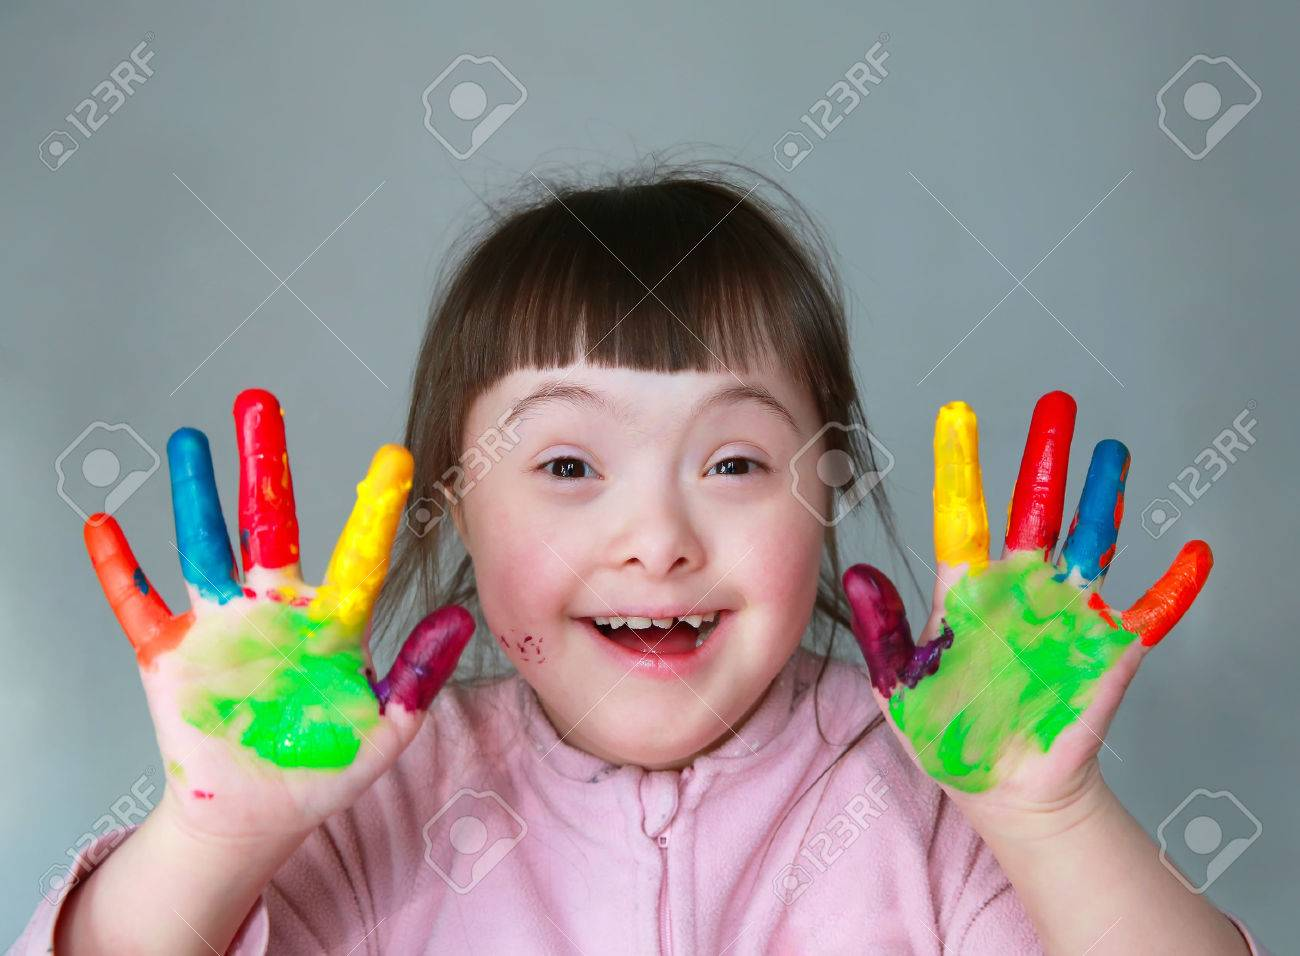 Cute little girl with painted hands. Isolated on grey background. Standard-Bild - 37086854